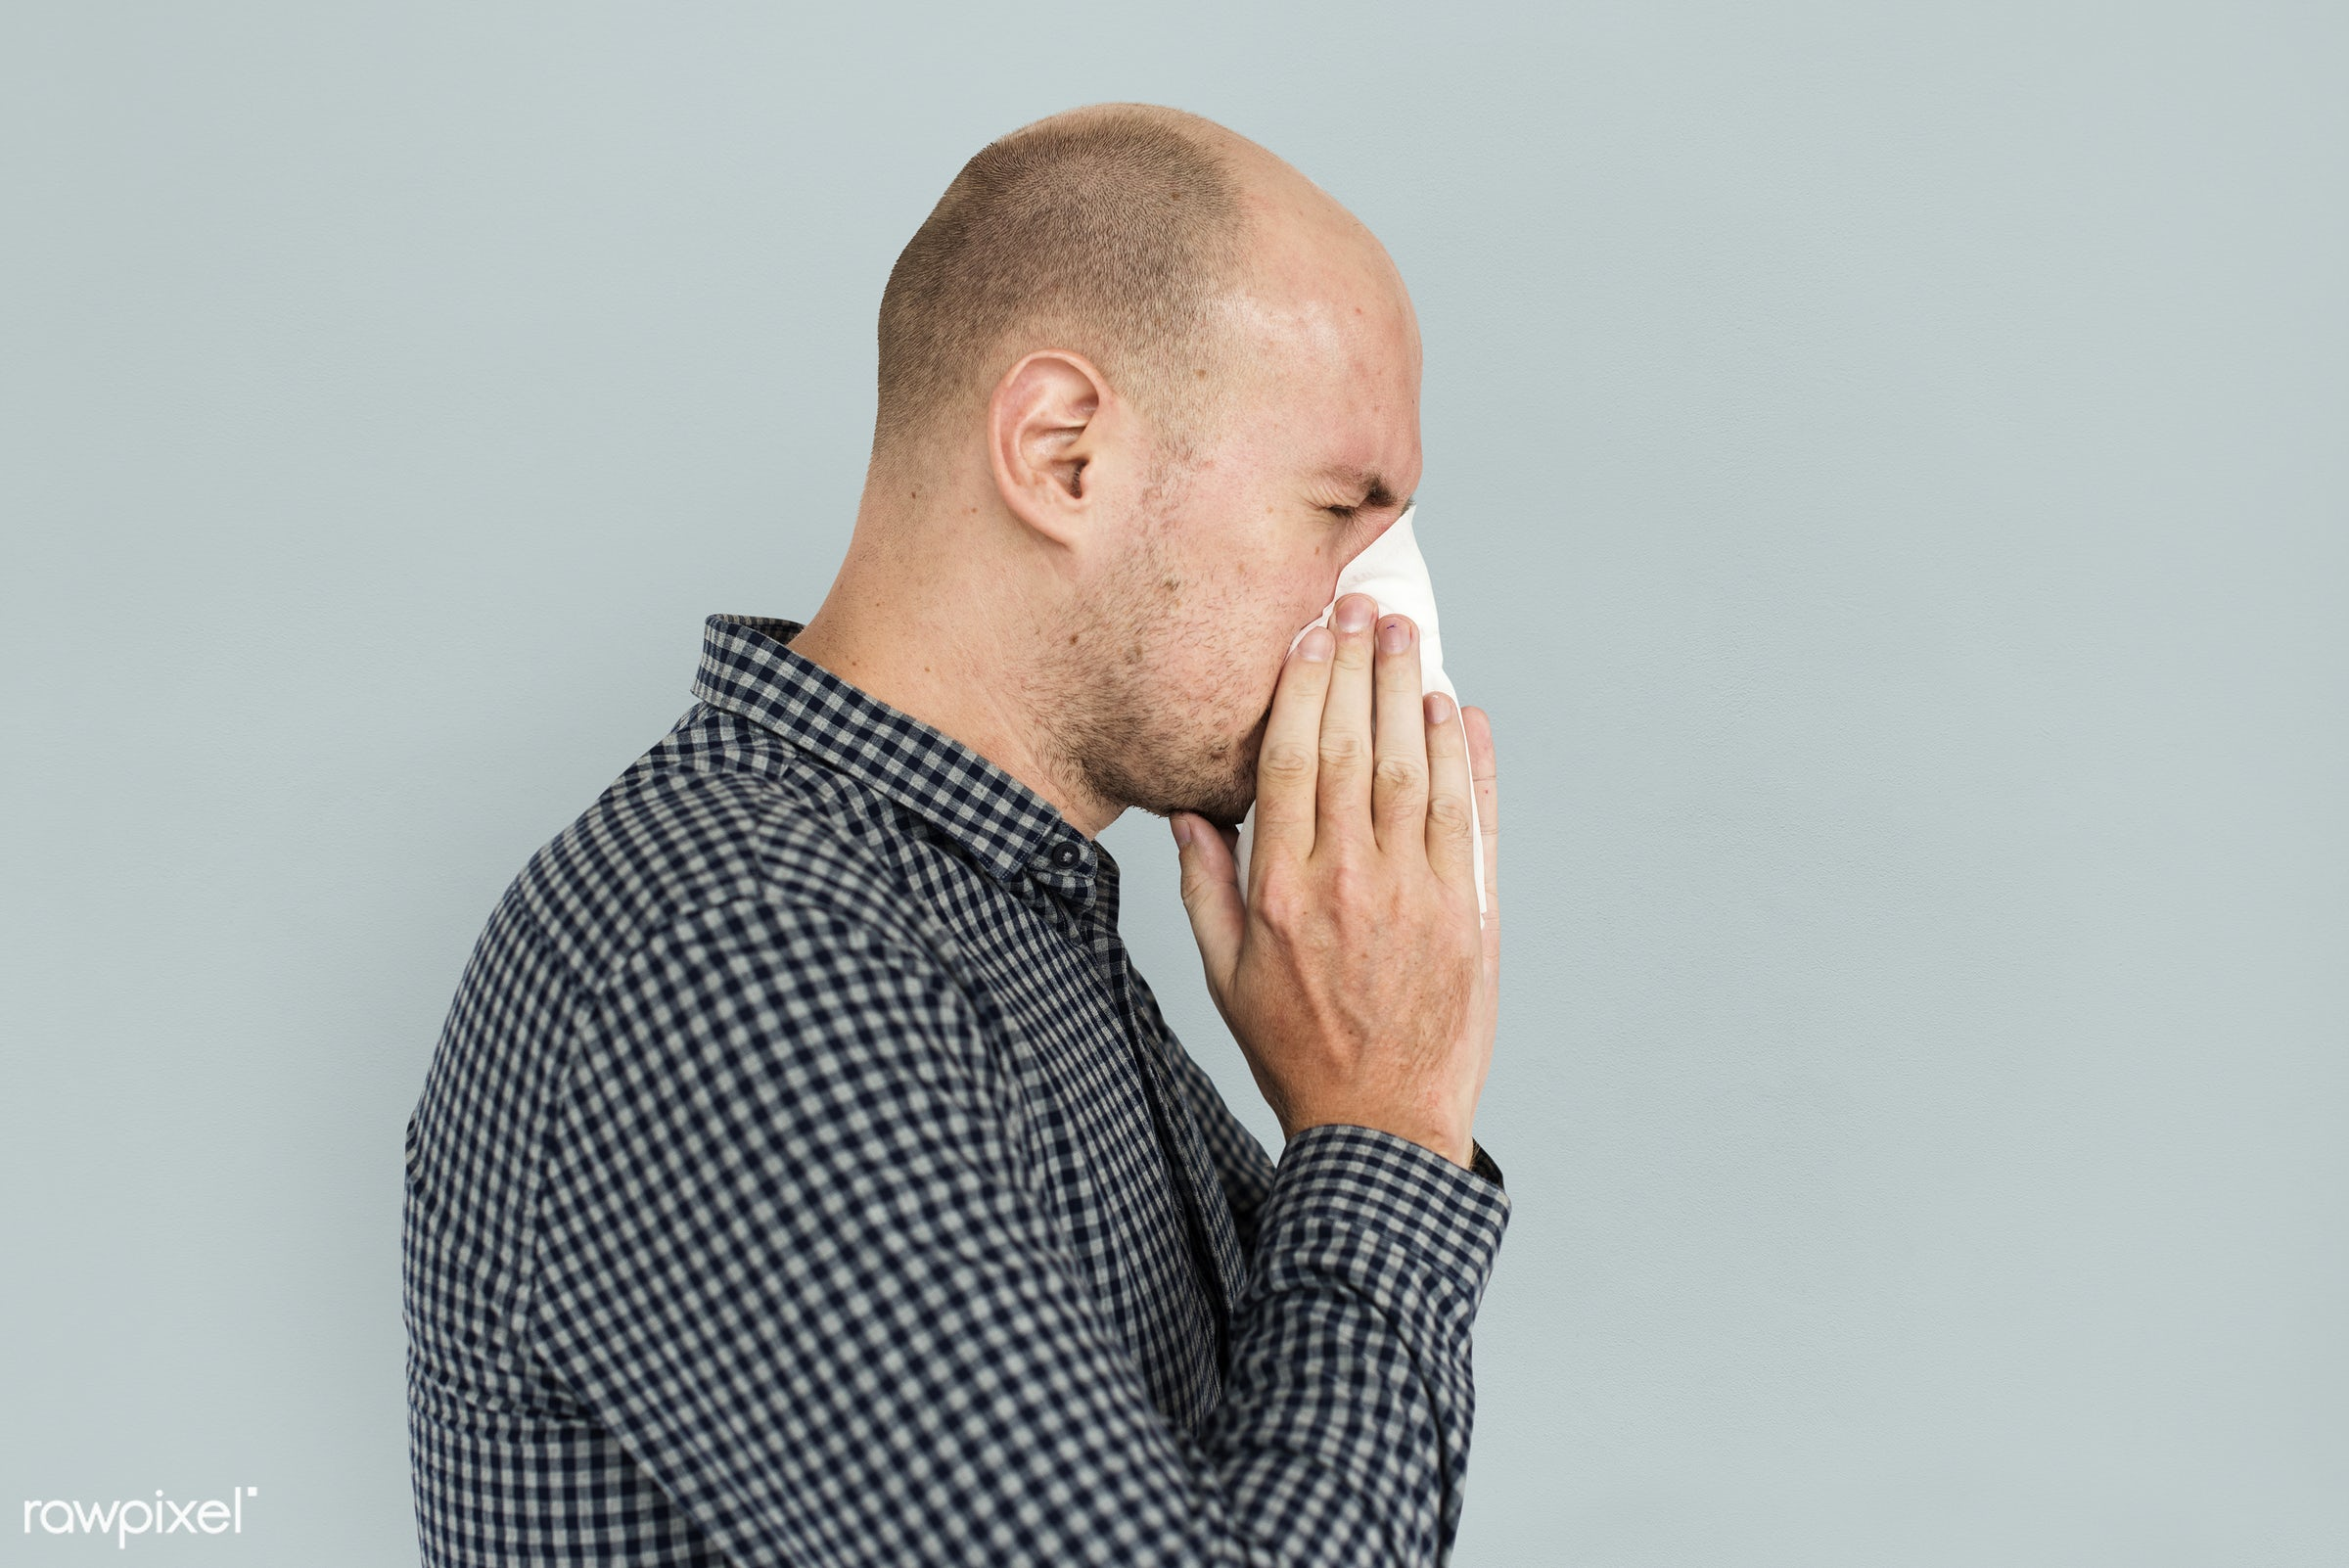 allergy, blowing nose, cold, ill, man, portrait, sick, sneezing, solo, studio, tissue, unwell